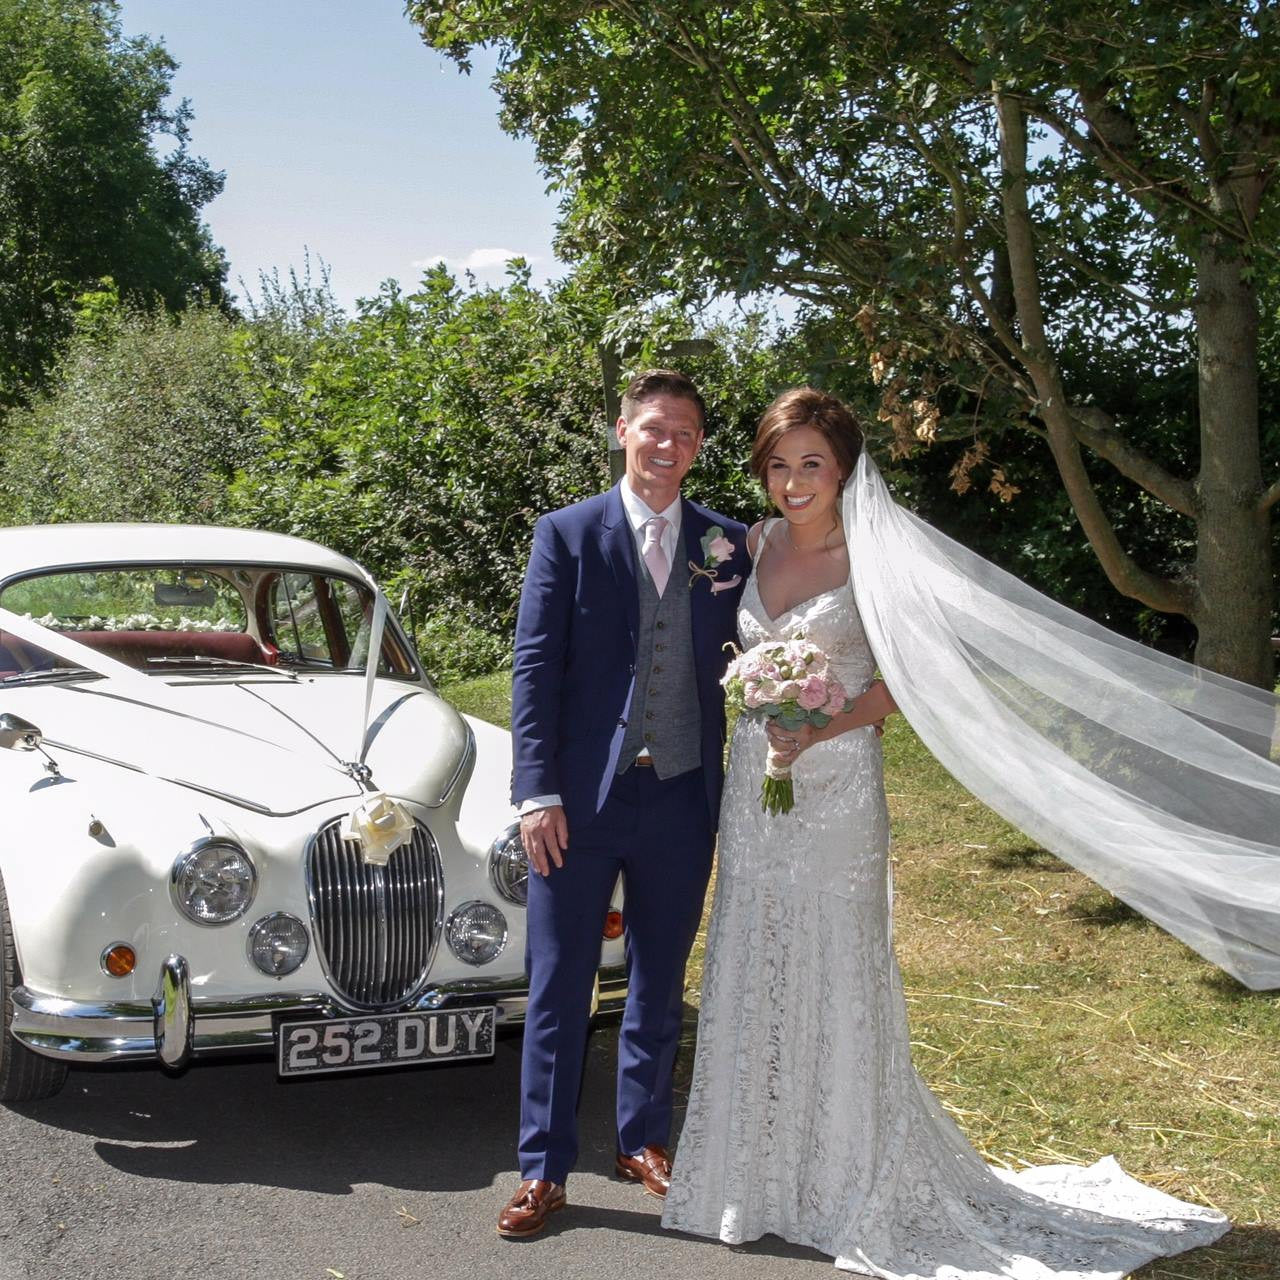 Bride and Groom with wedding car and wedding flowers.